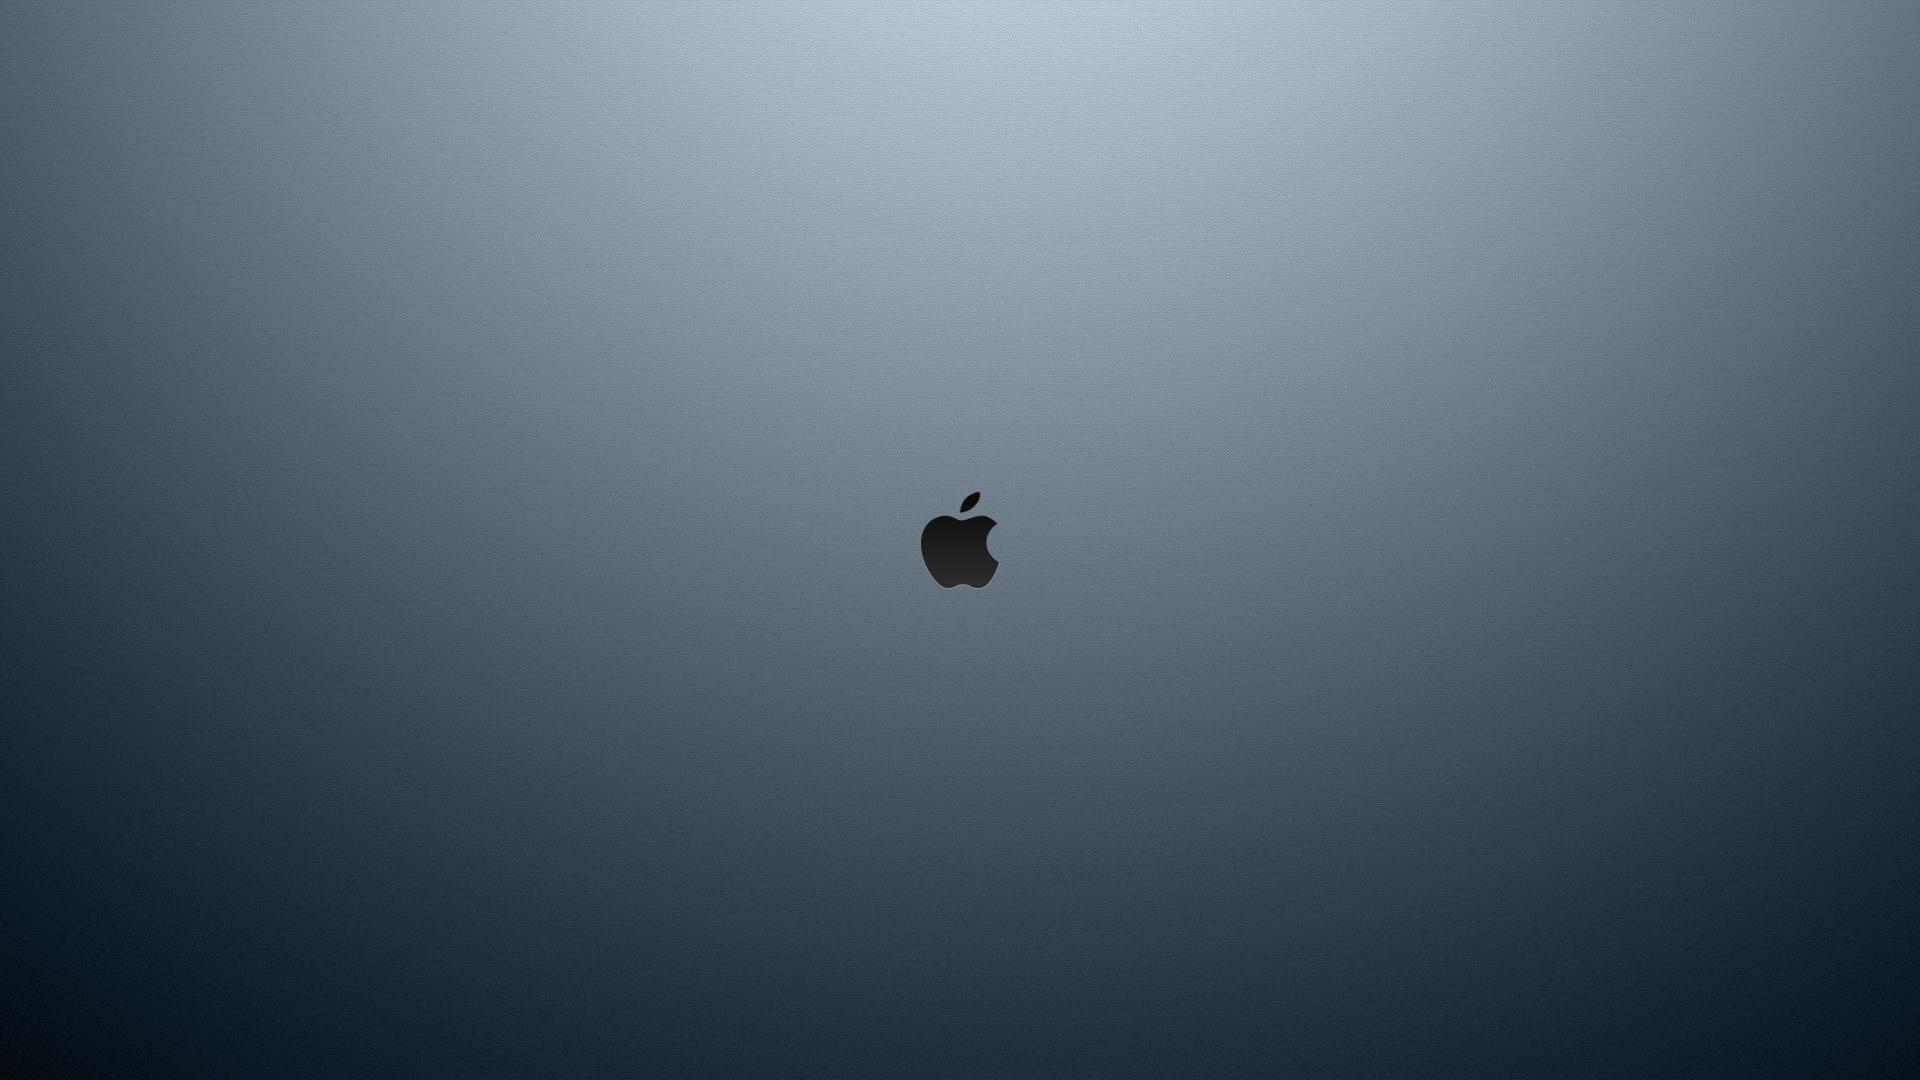 Download apple os x gradient wallpaper HD wallpaper 1920x1080